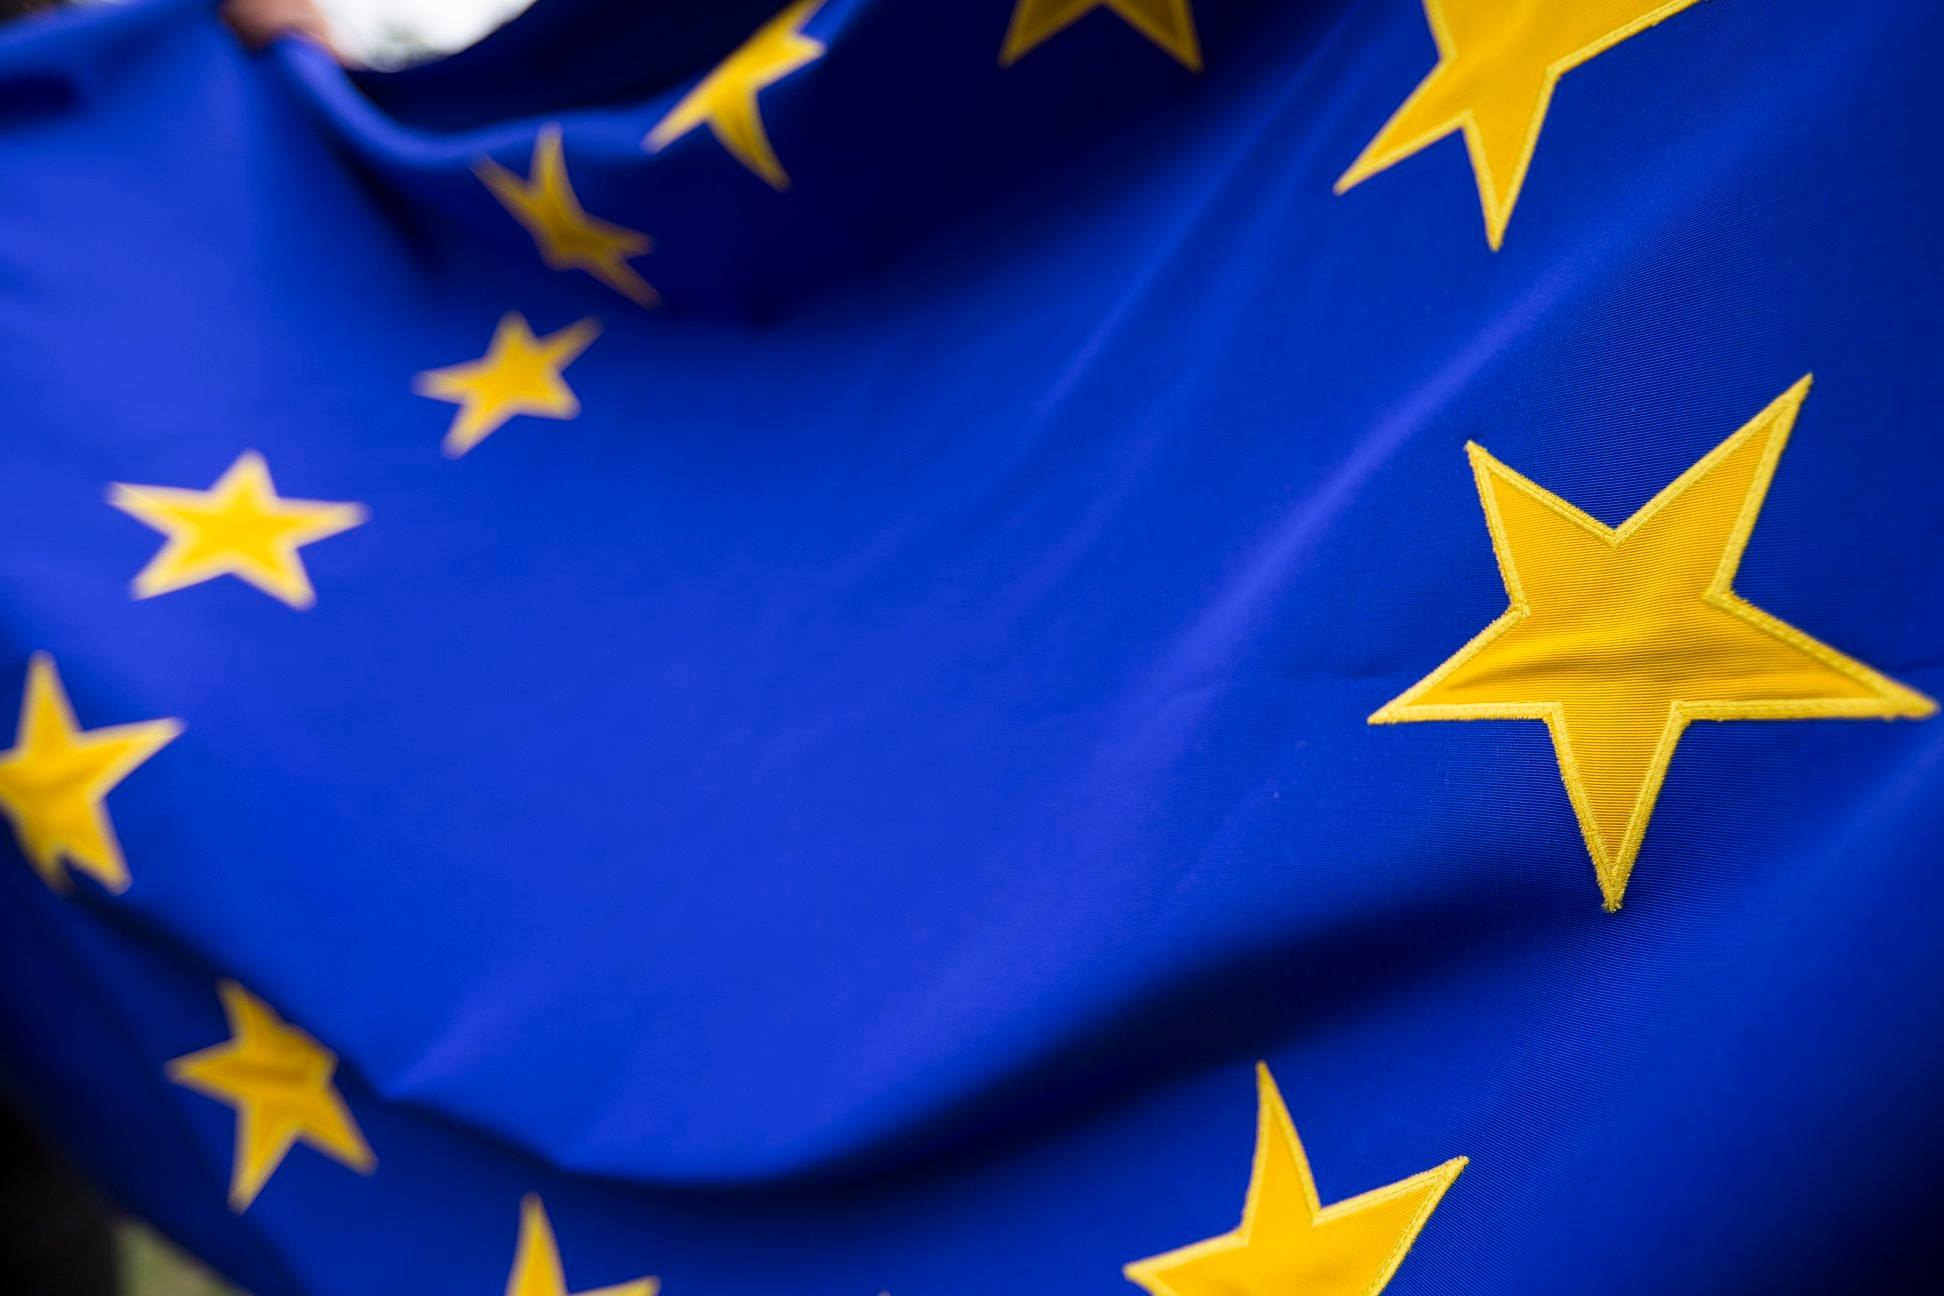 European Commision EU going for net-zero ghg emissions by 2050